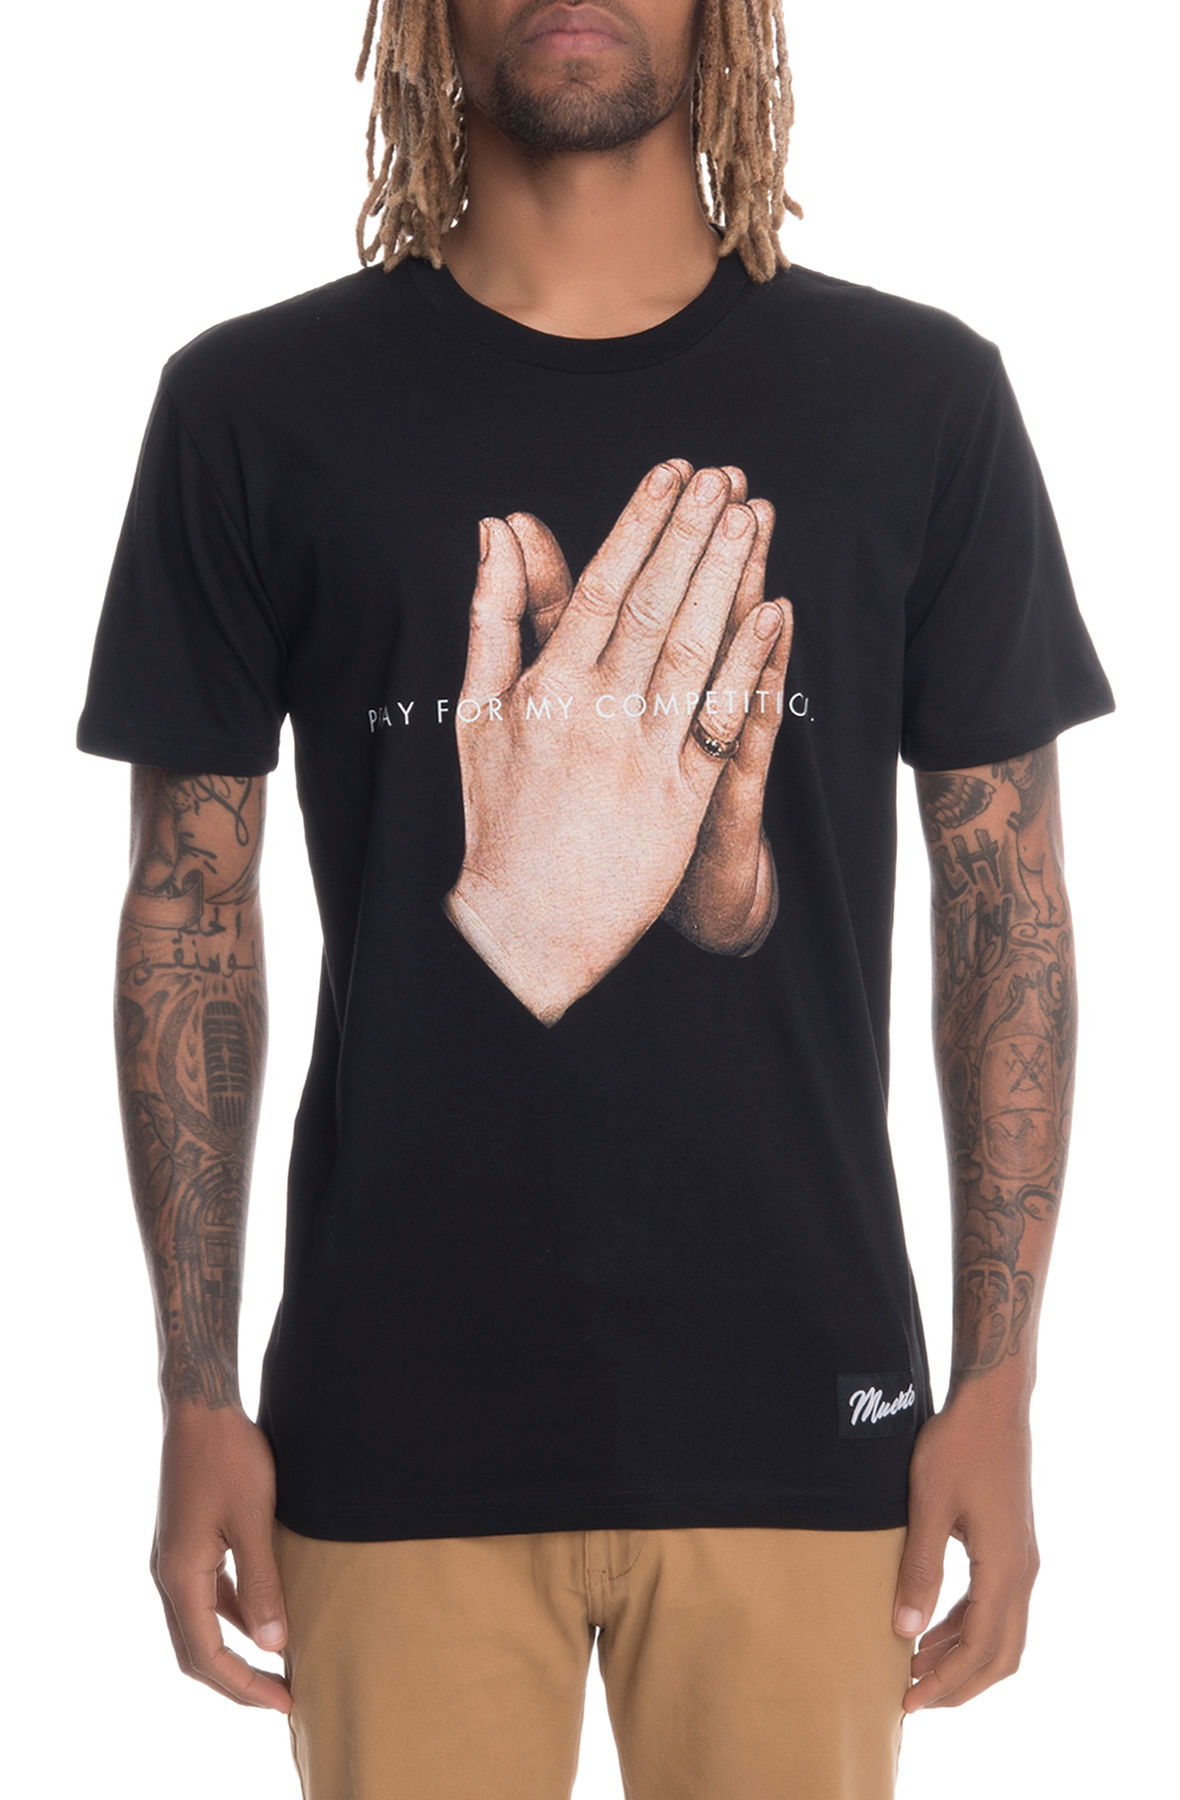 Image of The Pray For My Competition Short Sleeve Tee in Black